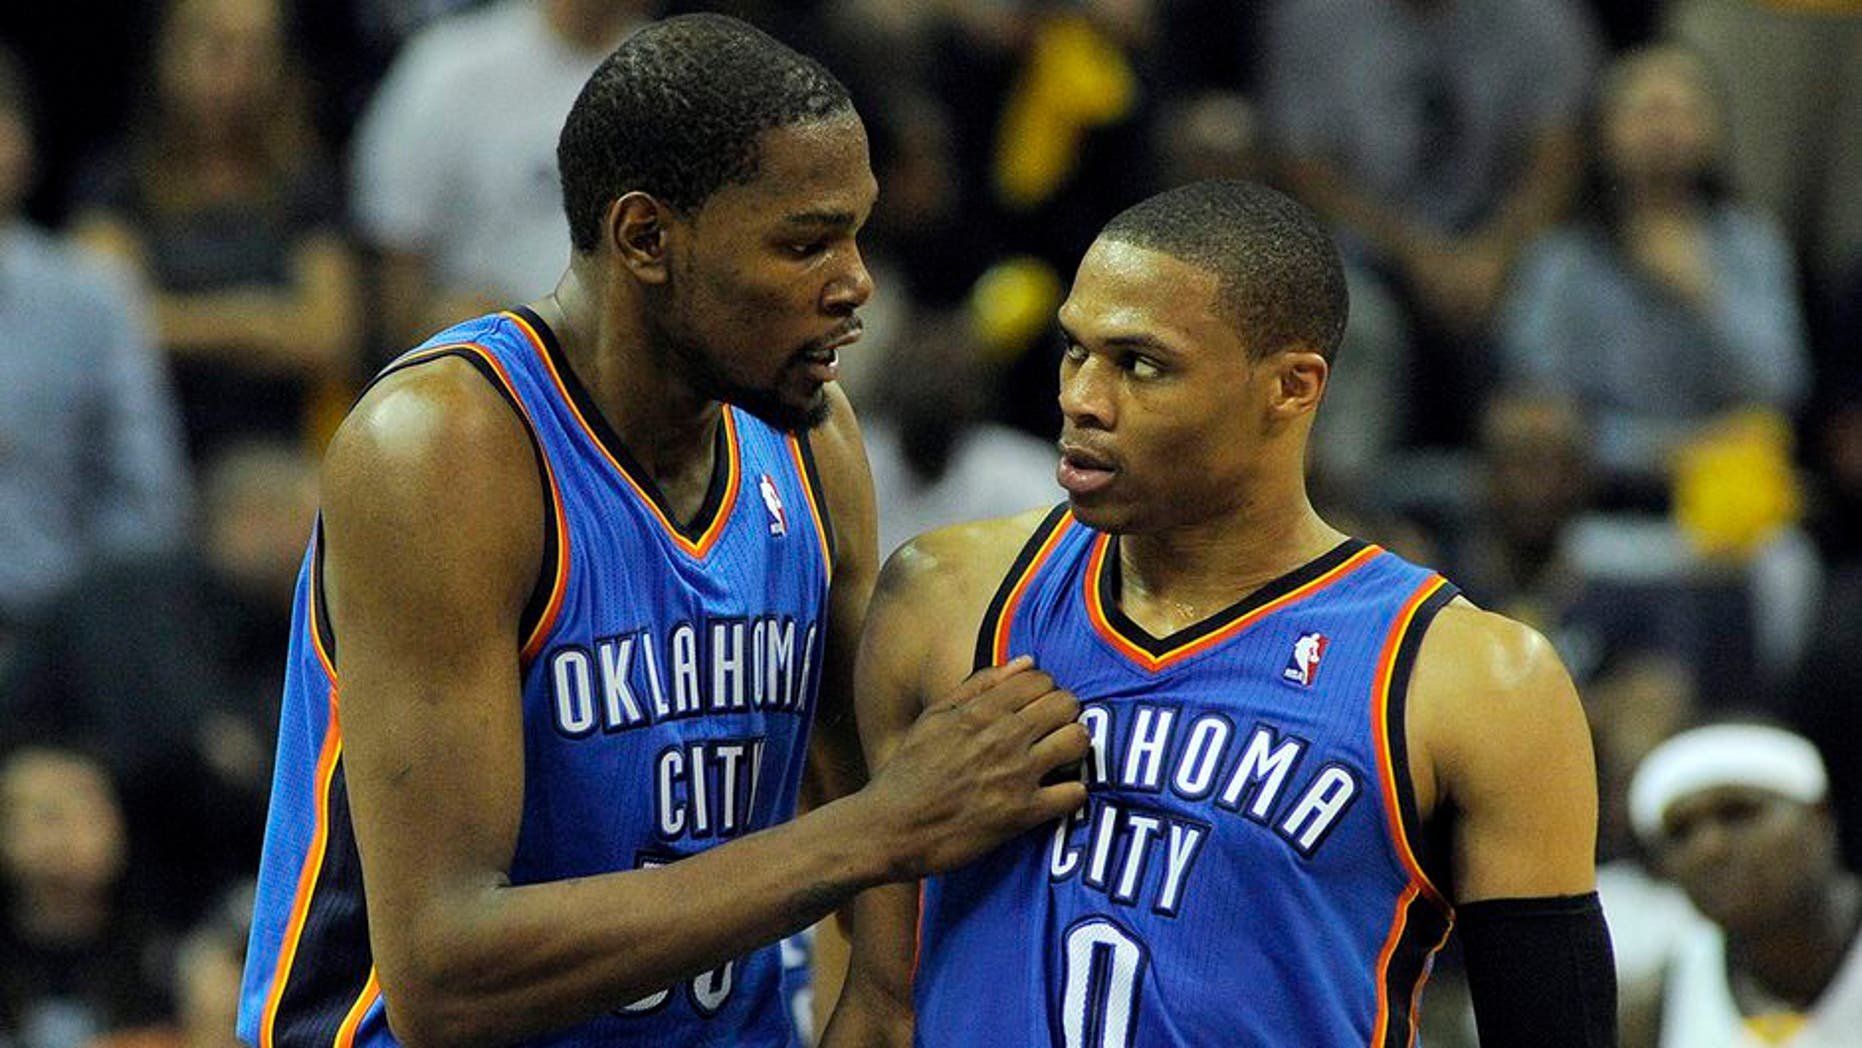 Apr 24, 2014; Memphis, TN, USA; Oklahoma City Thunder forward Kevin Durant (35) and guard Russell Westbrook (0) talk during the game against the Memphis Grizzlies in game three of the first round of the 2014 NBA Playoffs at FedExForum. Memphis Grizzlies beat Oklahoma City Thunder in overtime 98 - 95. Mandatory Credit: Justin Ford-USA TODAY Sports